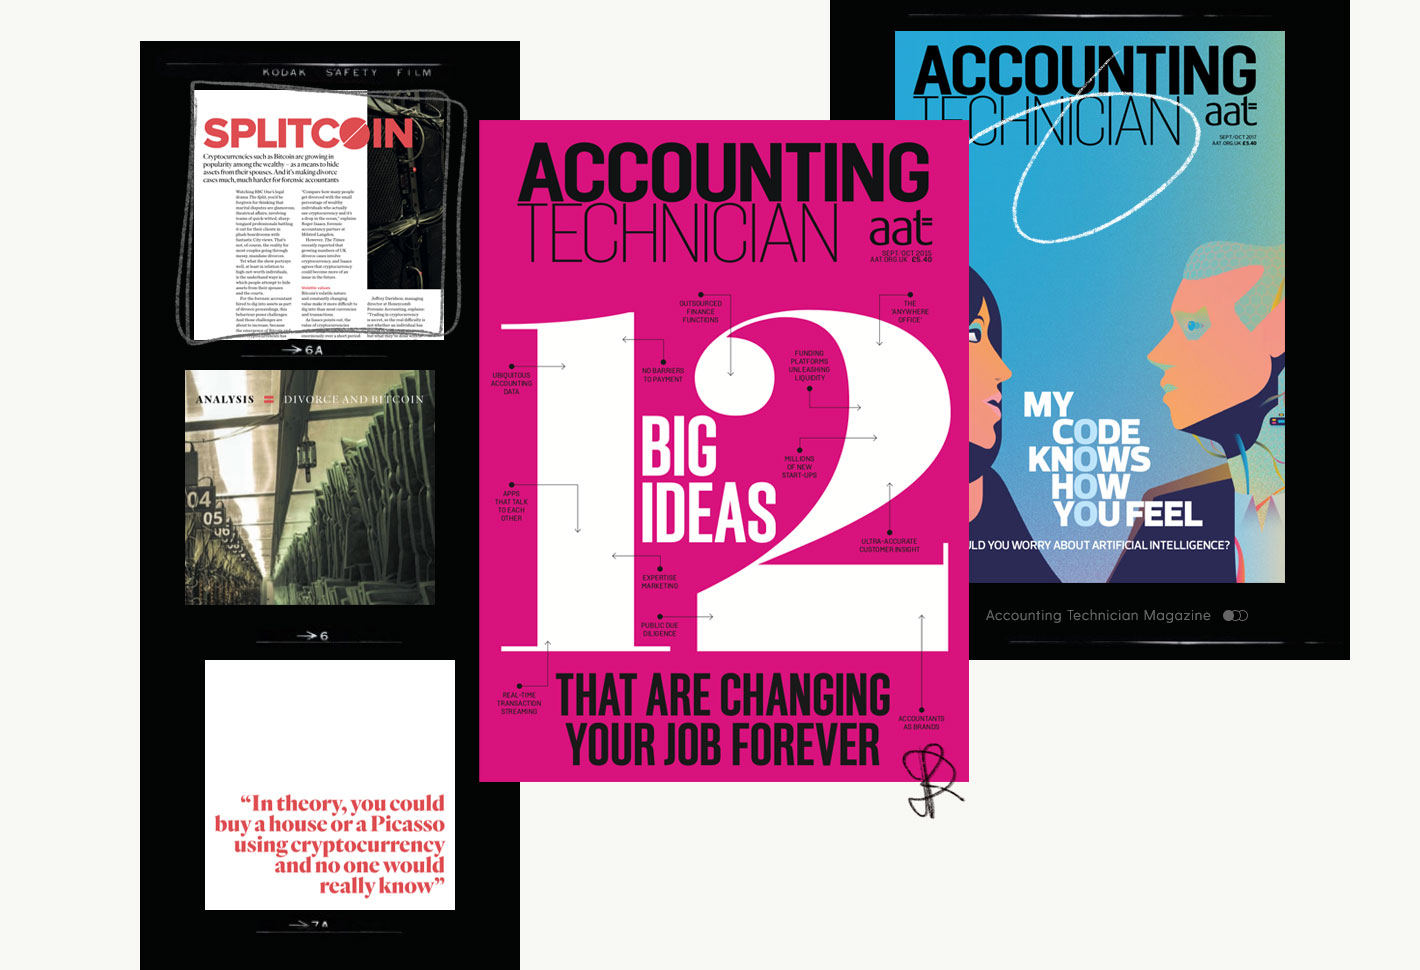 Covers of Accounting Technician magazine